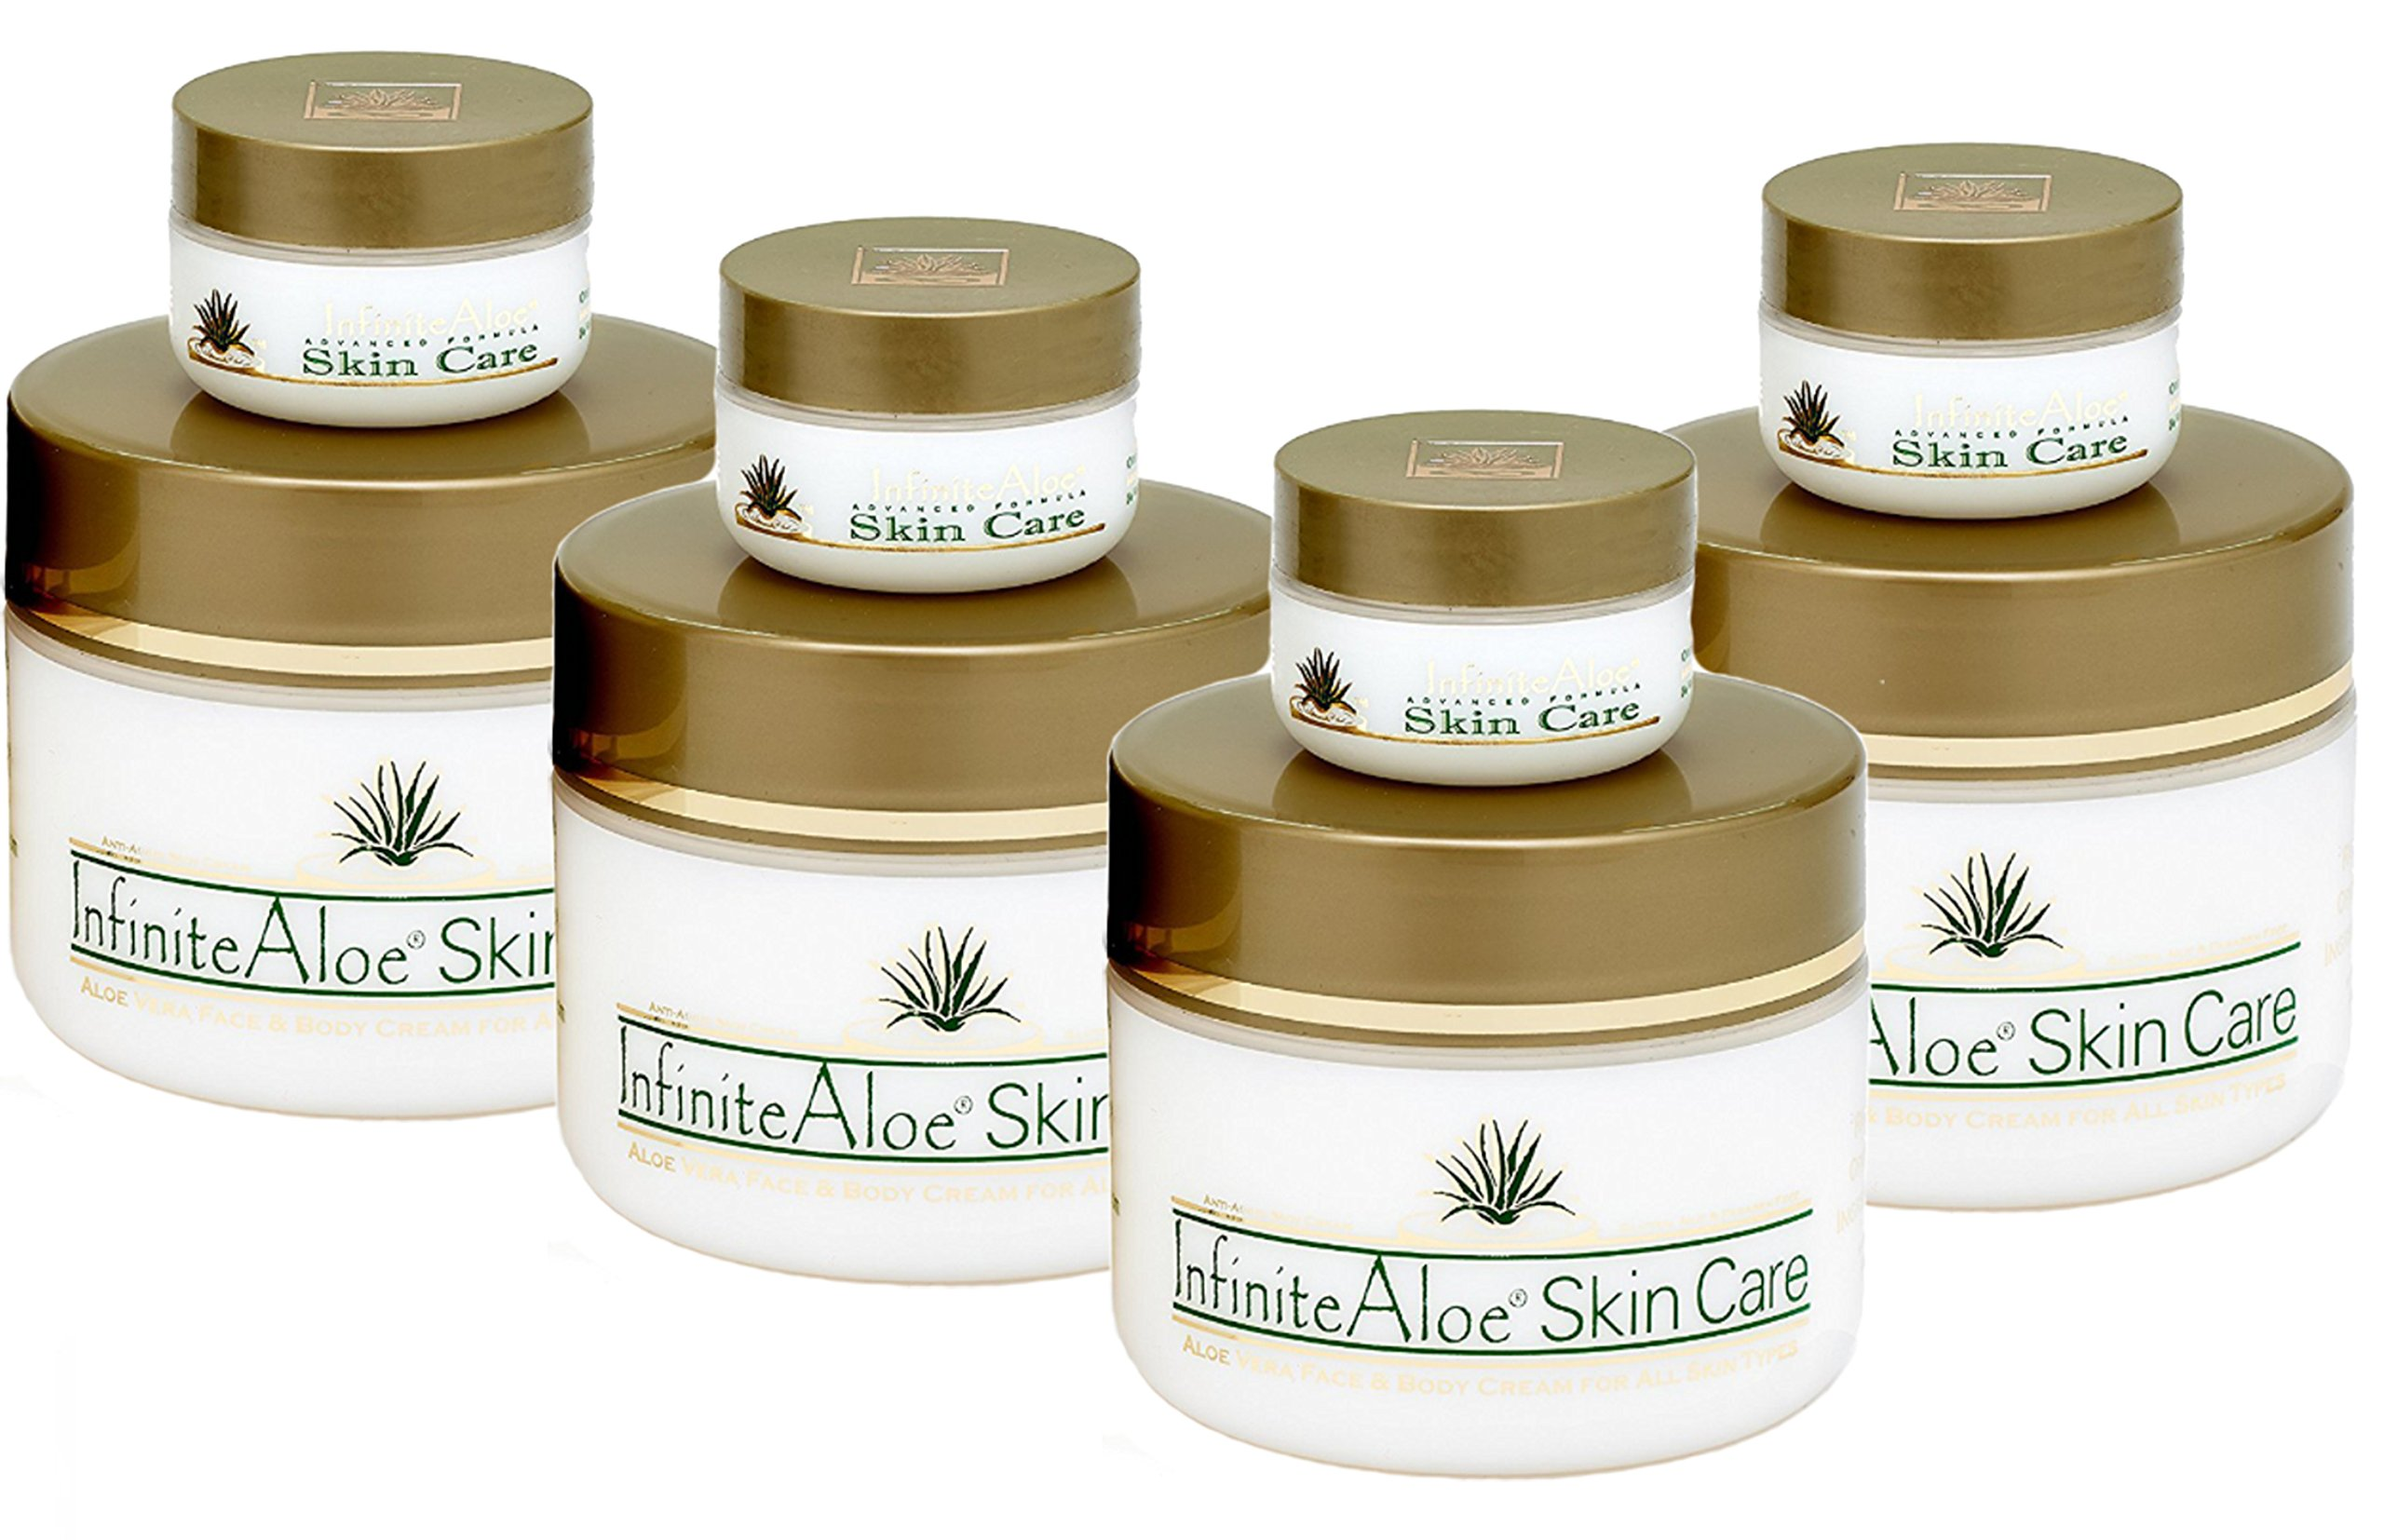 Infinite Aloe Skin Care Cream, Original Scent, 8oz. - 4 Jars - ** (Plus 4 Bonus 0.5 oz InfiniteAloe Travel Jars) **